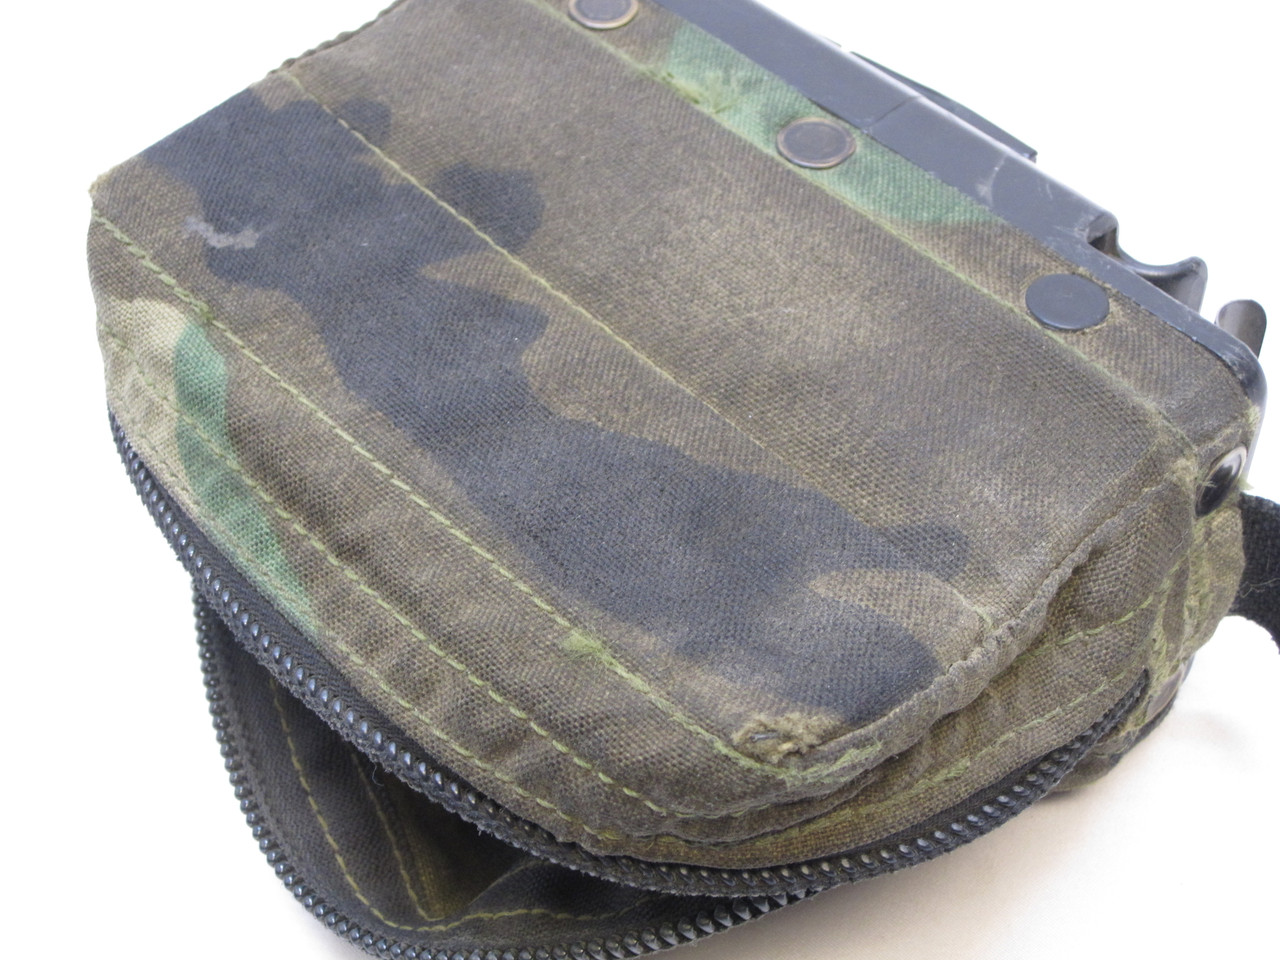 USED WOODLAND BDU M249 AMMO POUCH 100 ROUND SOFT PACK NUT SACK SAW 5.56